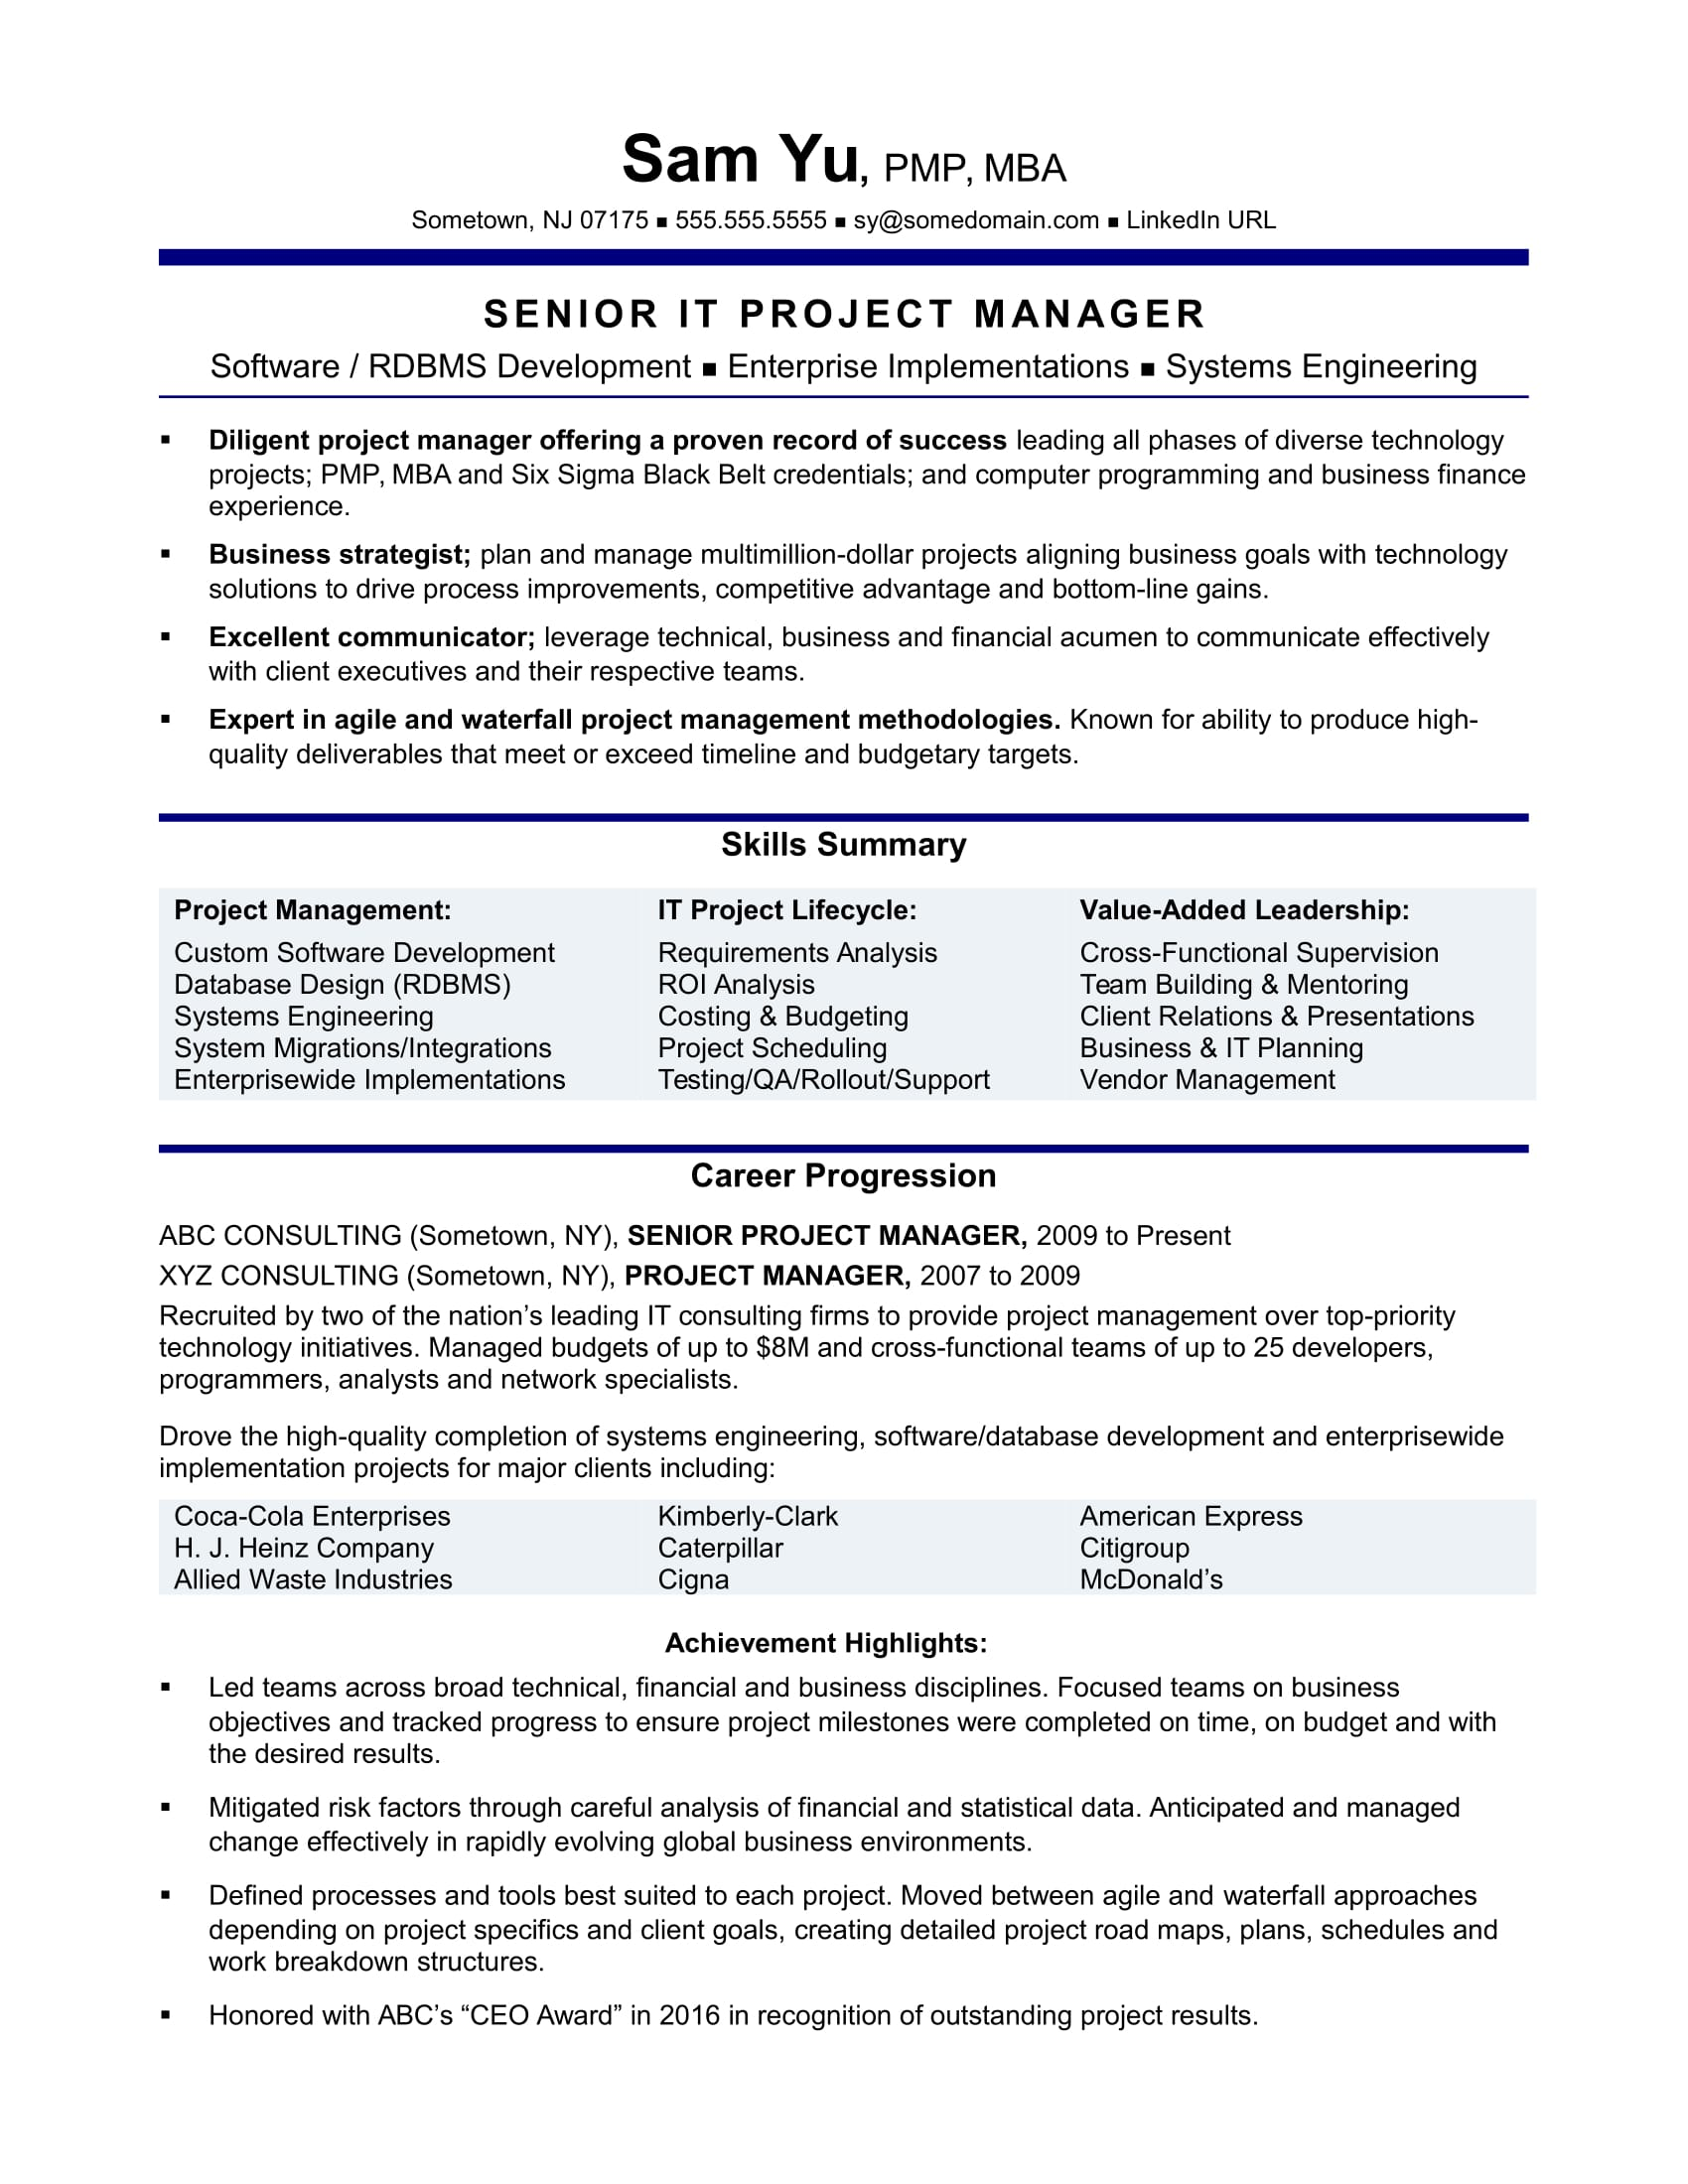 Experienced it project manager resume sample monster experienced it project manager resume sample yelopaper